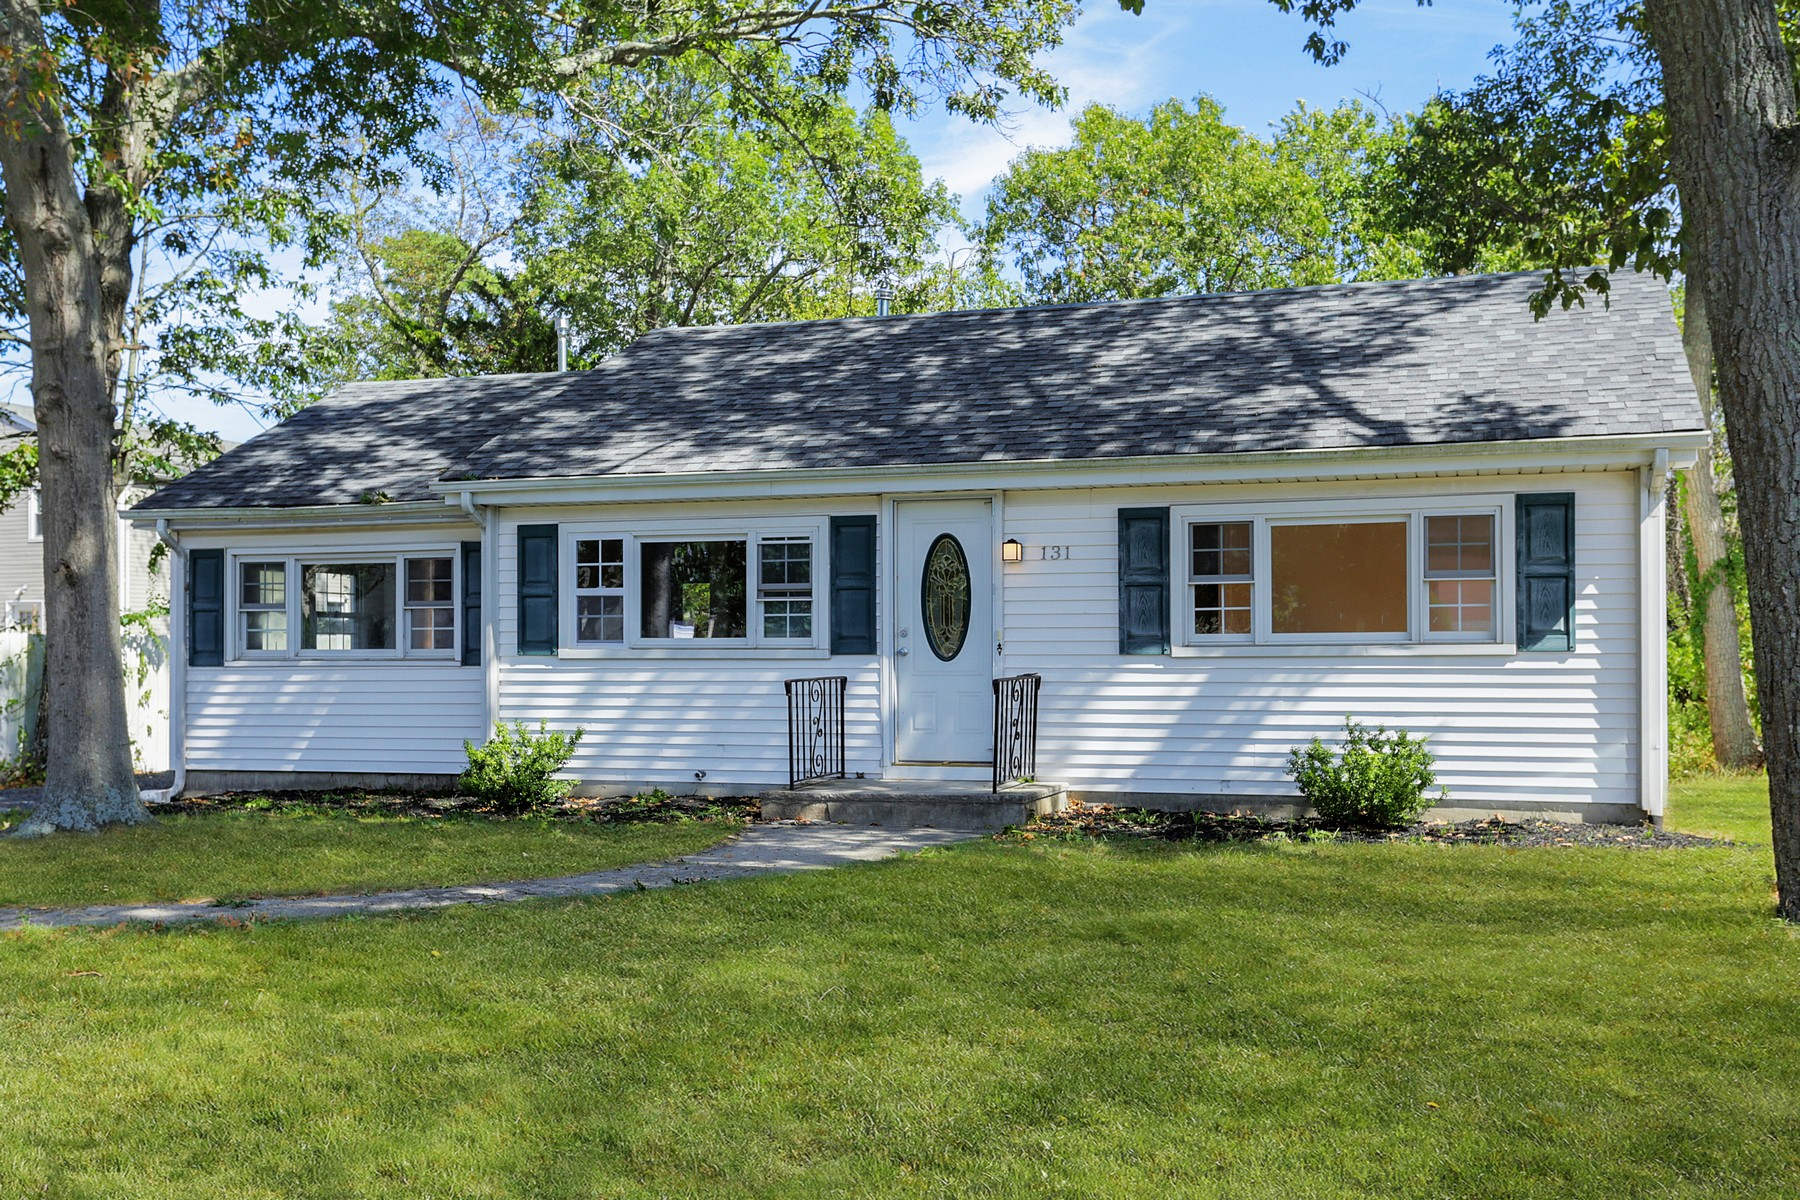 Single Family Homes for Sale at 131 Pine Needle Drive 131 Pine Needle Dr Toms River, New Jersey 08753 United States